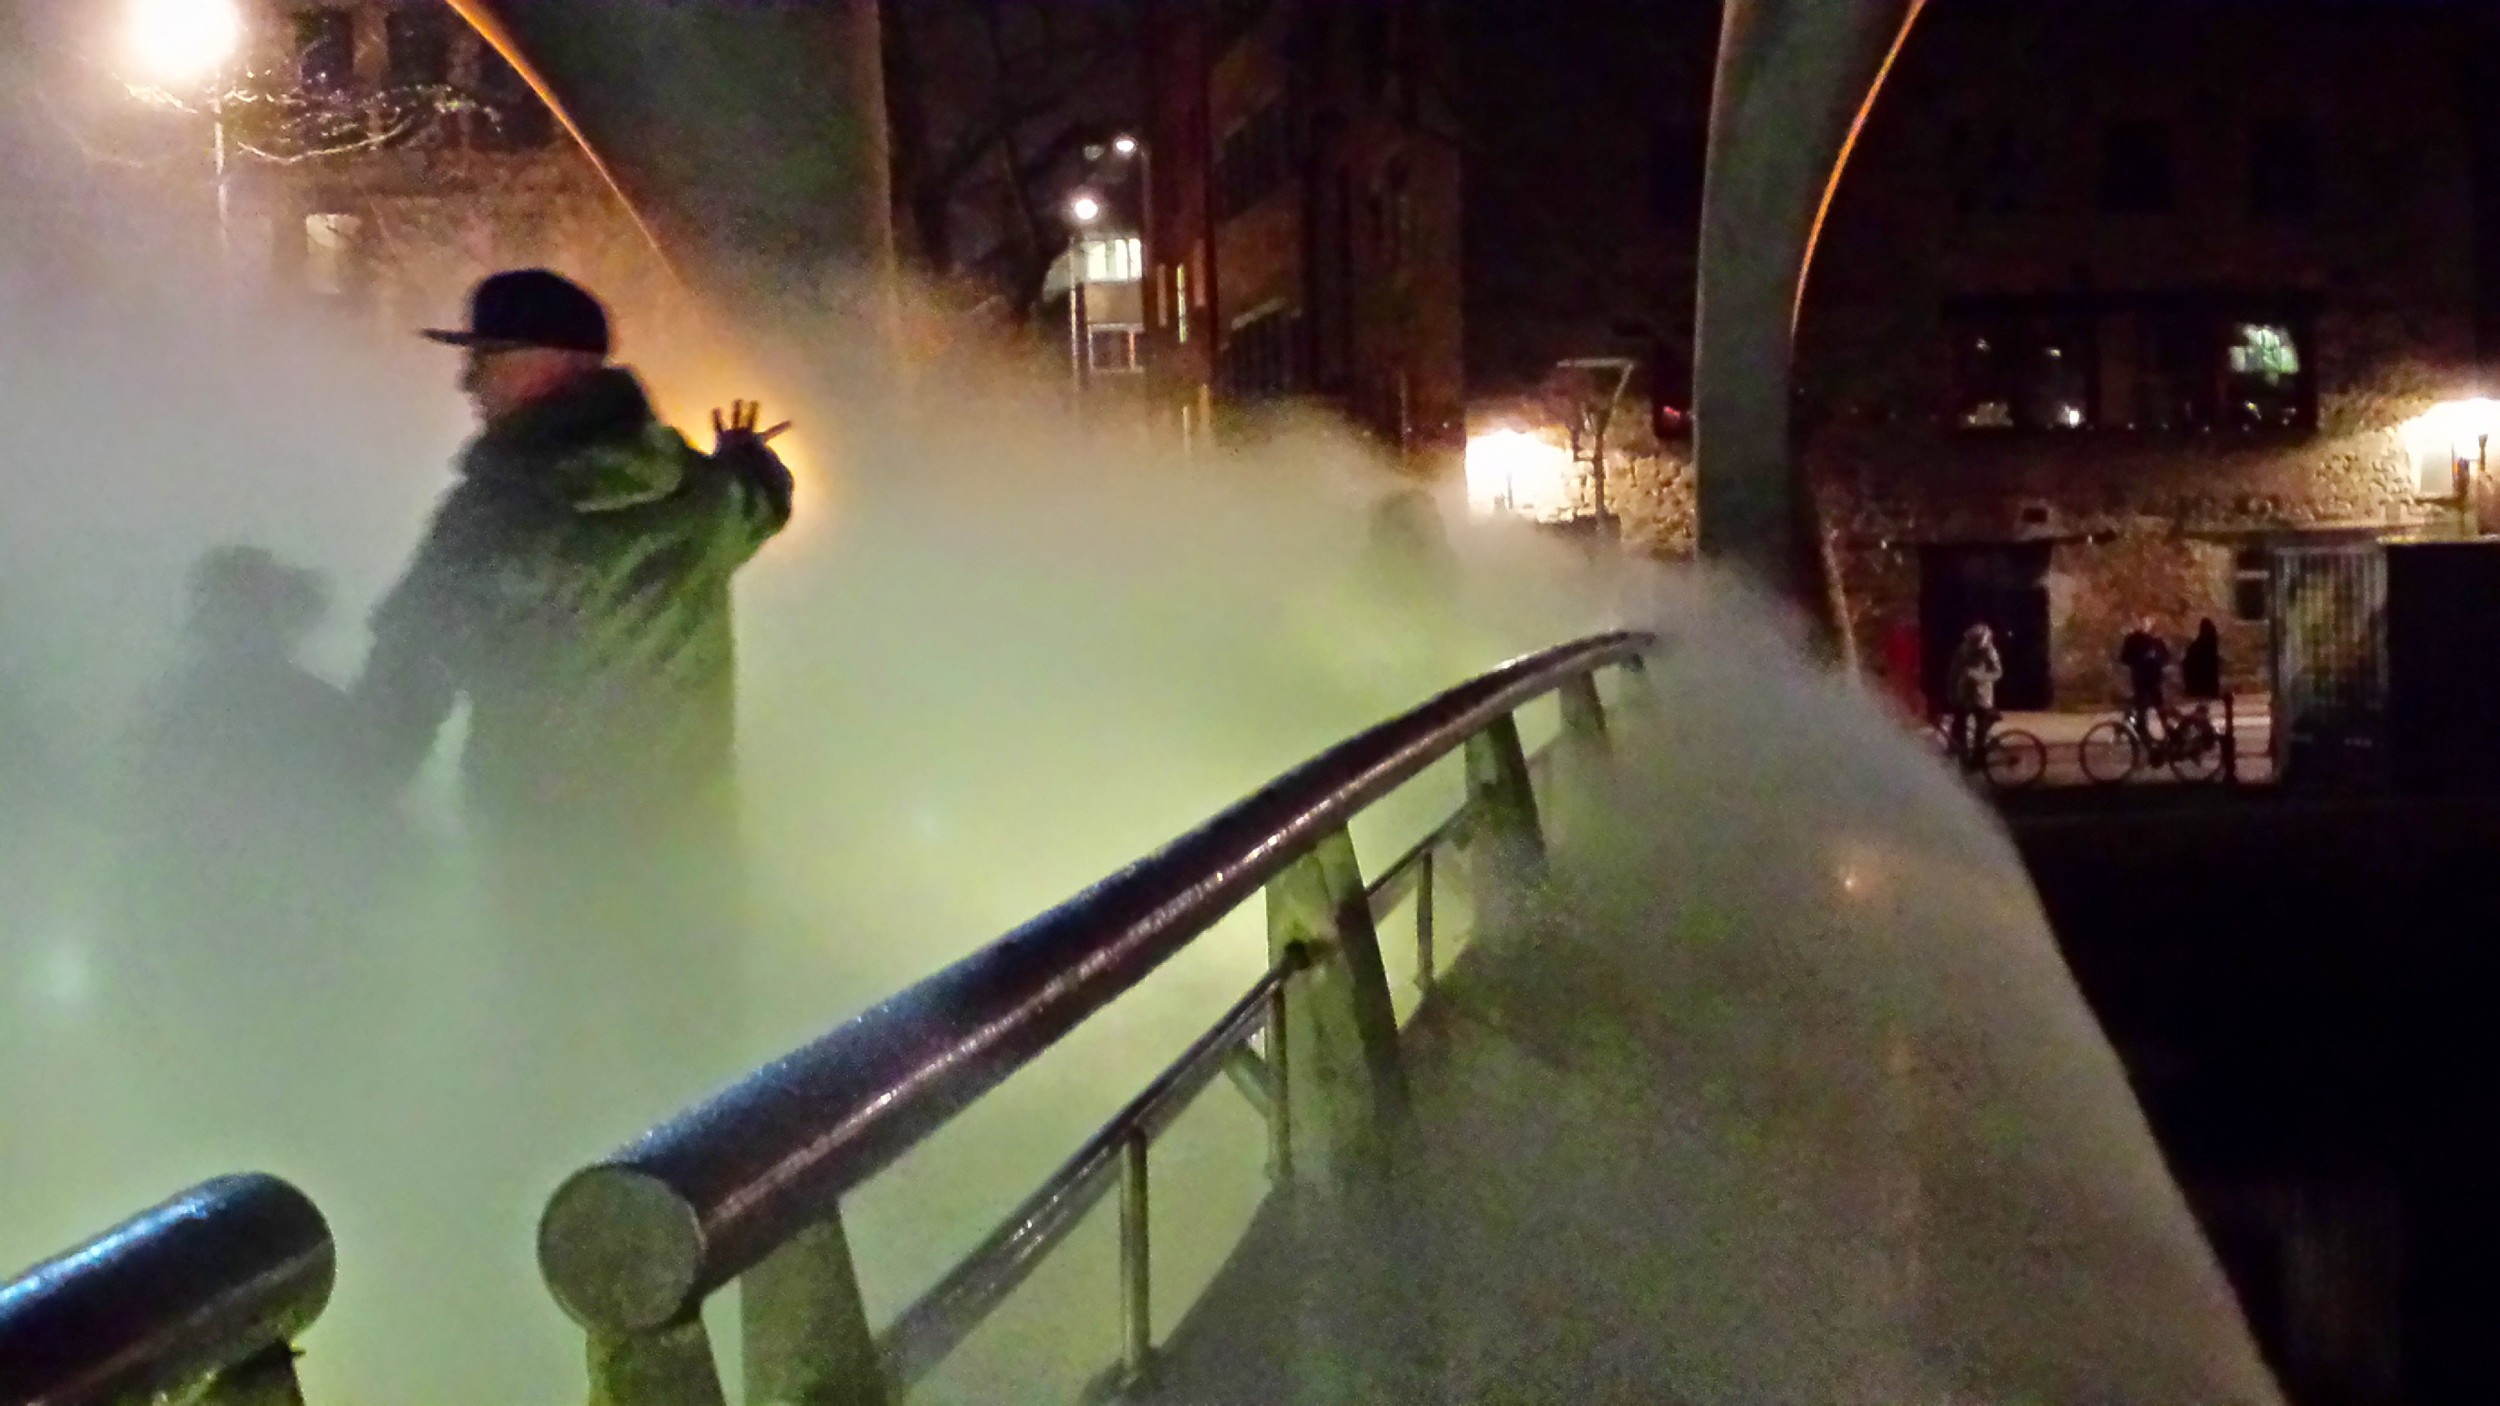 Fog Bridge, an art installation by Japanese artist Fujiko Nakaya, Pero's Bridge, Bristol, February 2015. Part of the In Between Time festival and European Green Capital